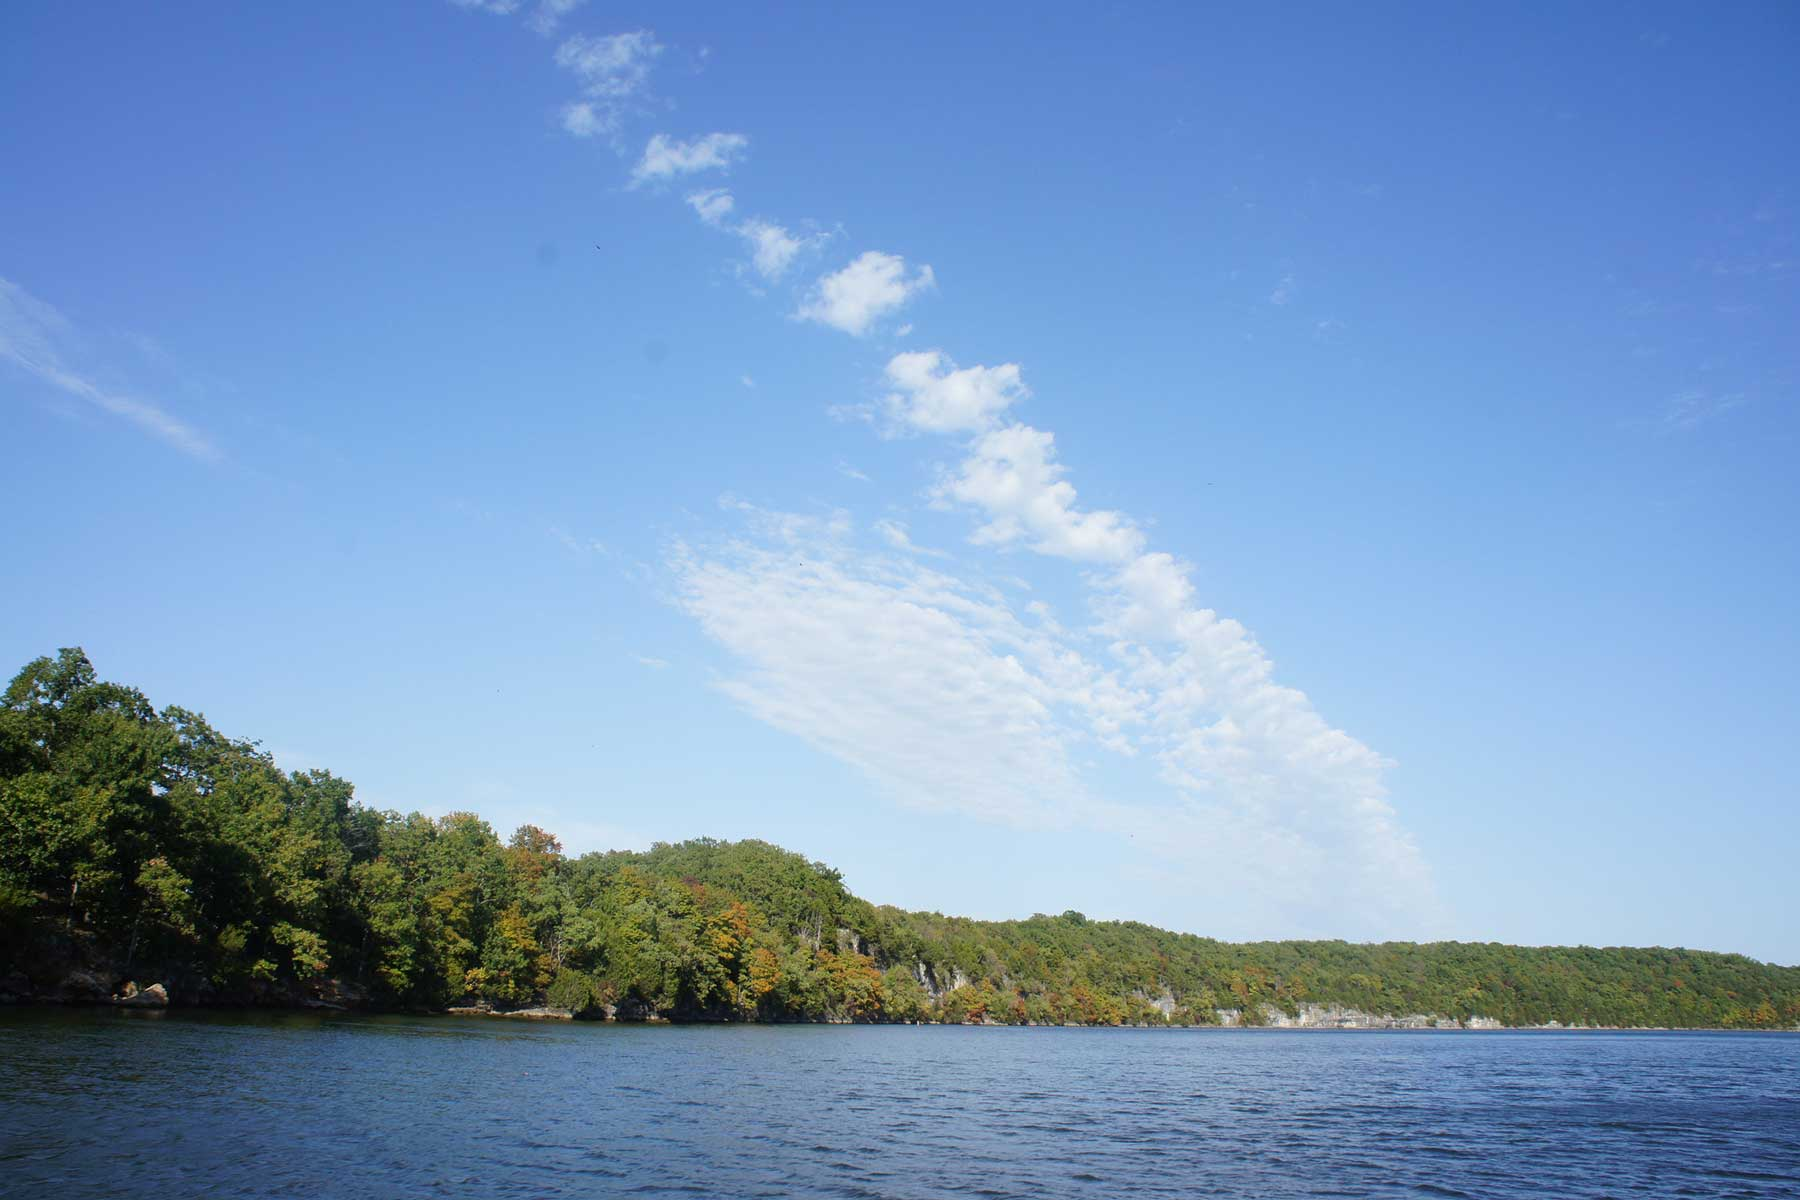 Blue skies, a green tree line along the lake of the Ozark in Missouri